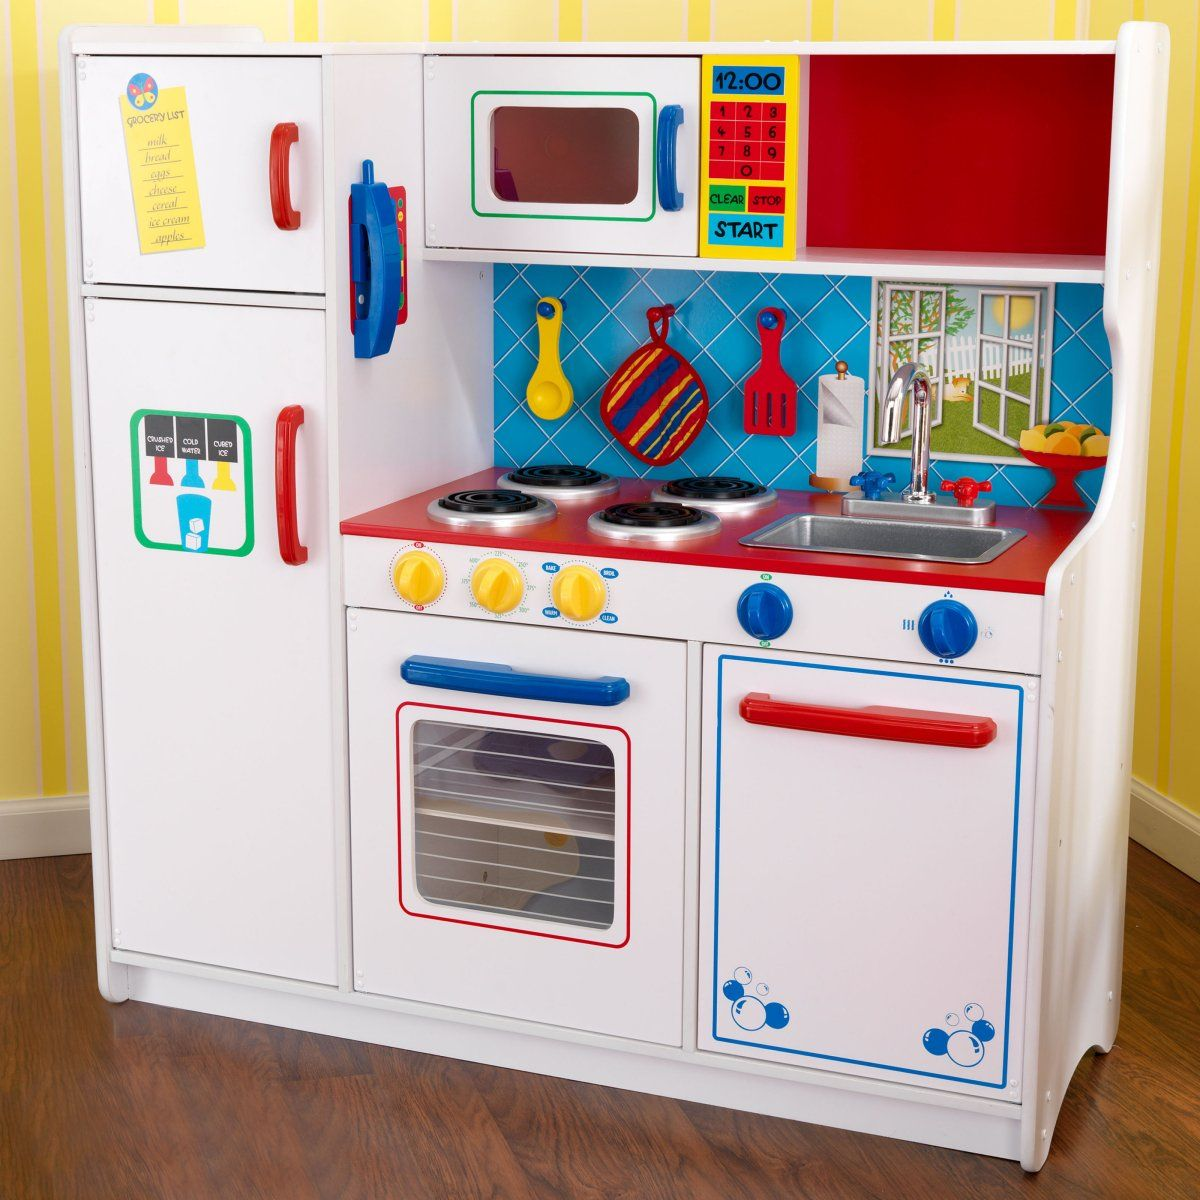 KidKraft Deluxe Lets Cook Play Kitchen Kitchen sets for